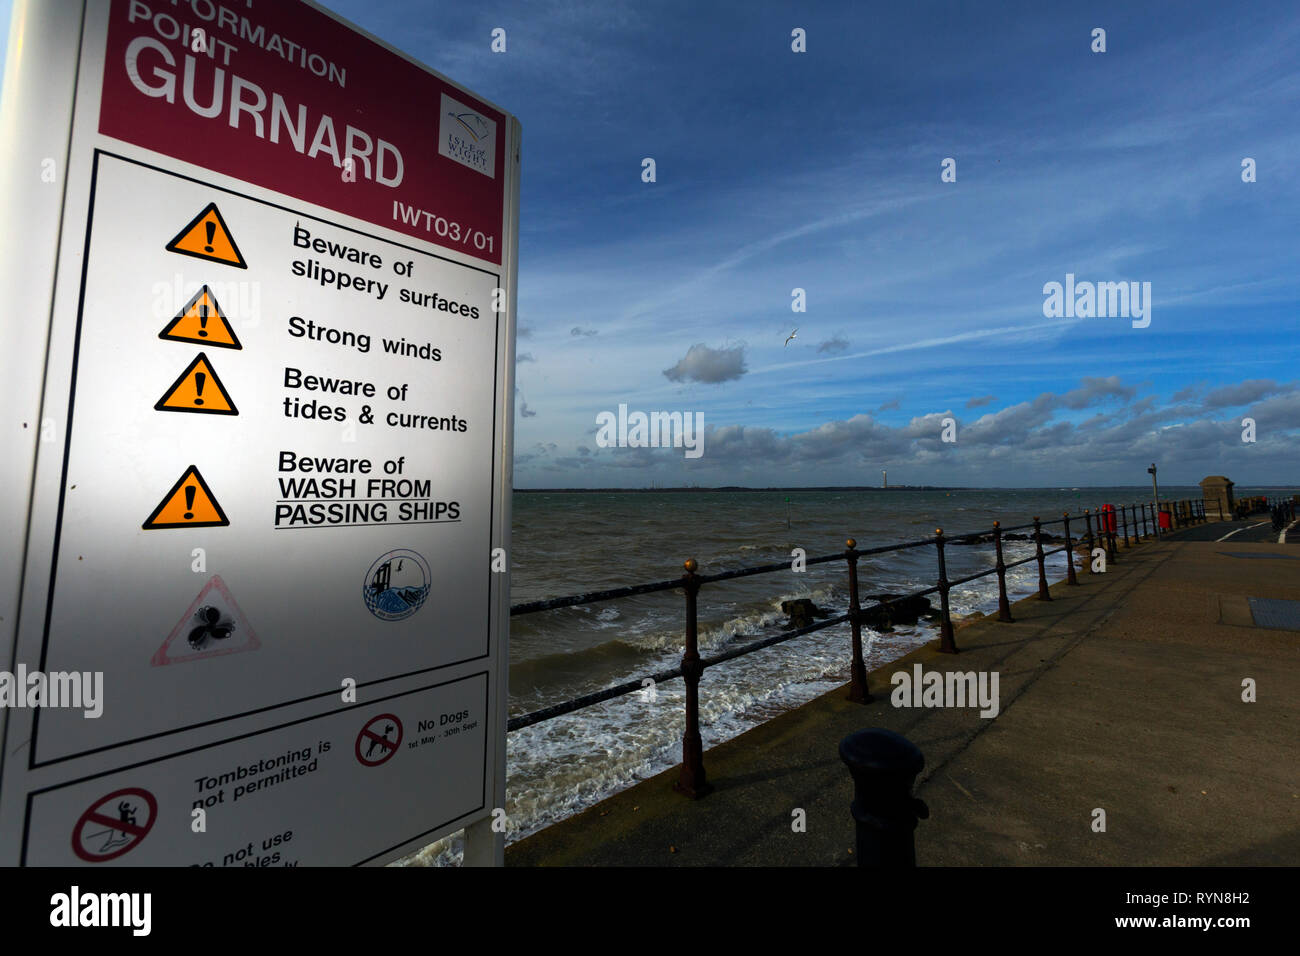 warning sign,beware of wash from, ships,strong,winds,slippery,surfaces,tides, currents,passing,tombstoing,not, permitted,no,dogs, Gurnard, Isle of Wig Stock Photo